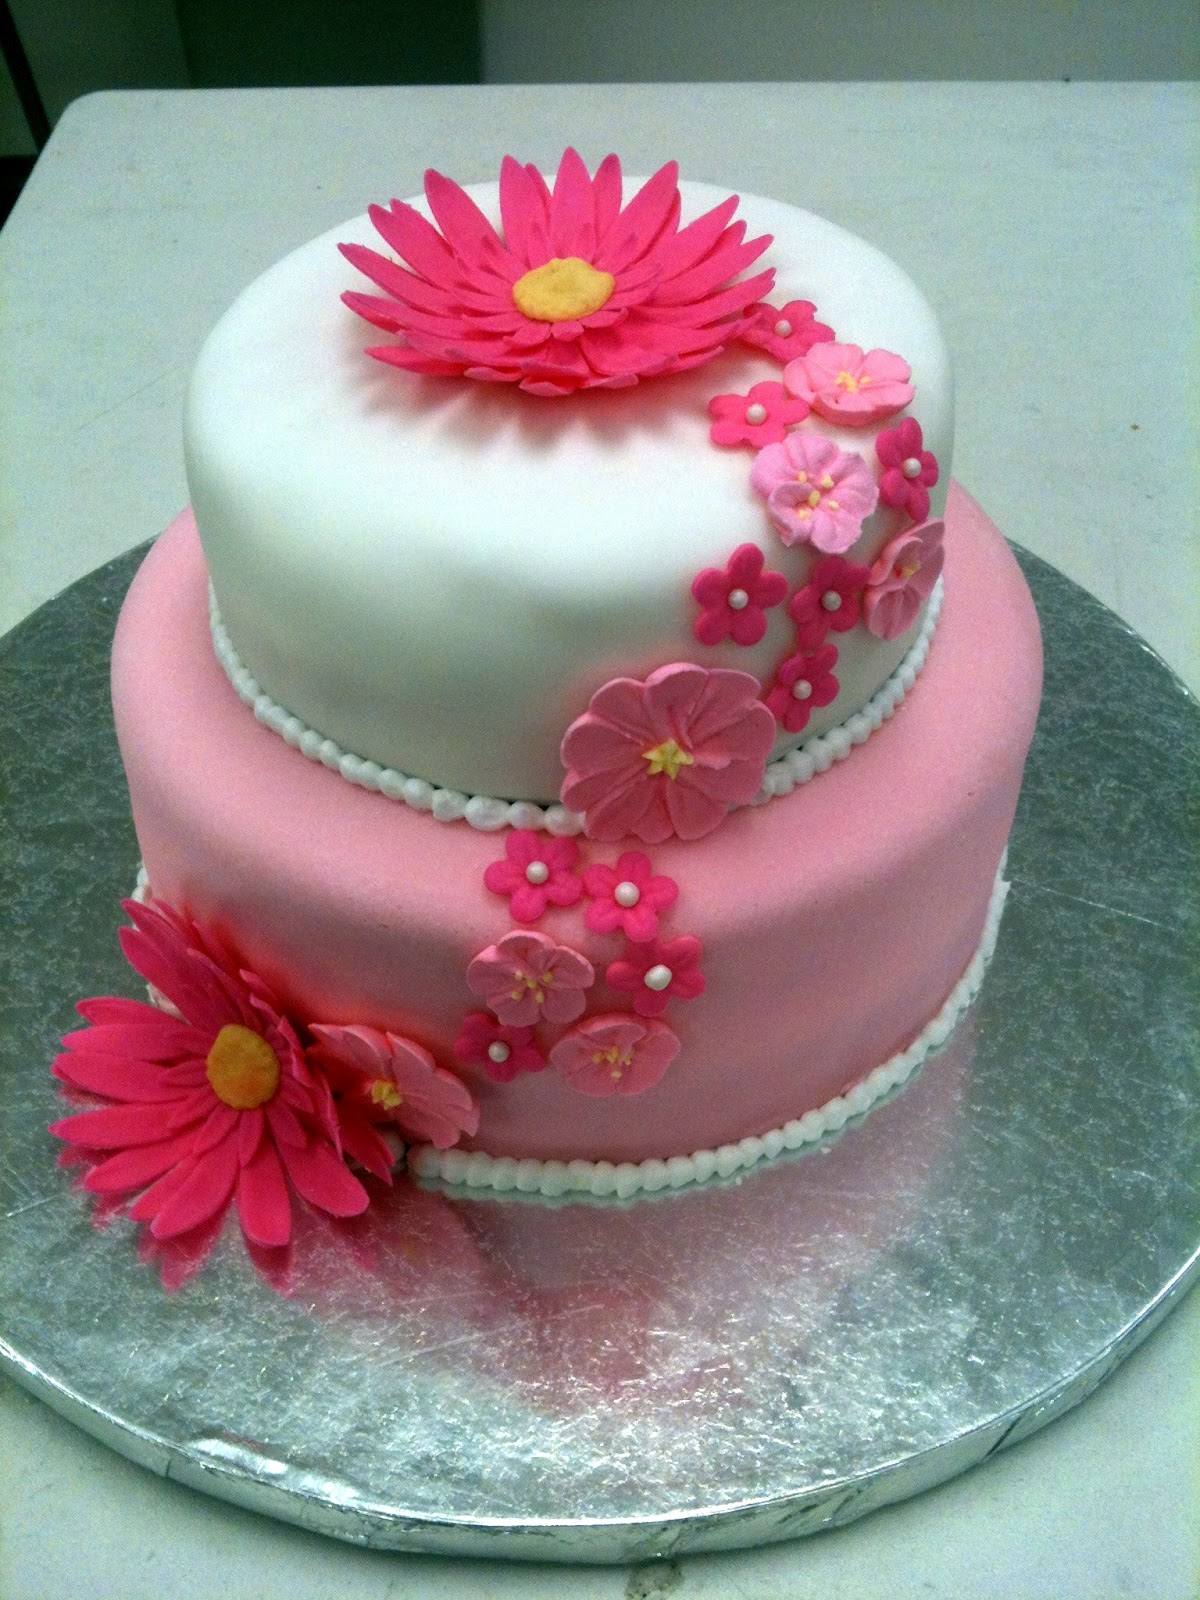 Cake Decorating by Sonia: March 2012 - Tall Cakes Class ...